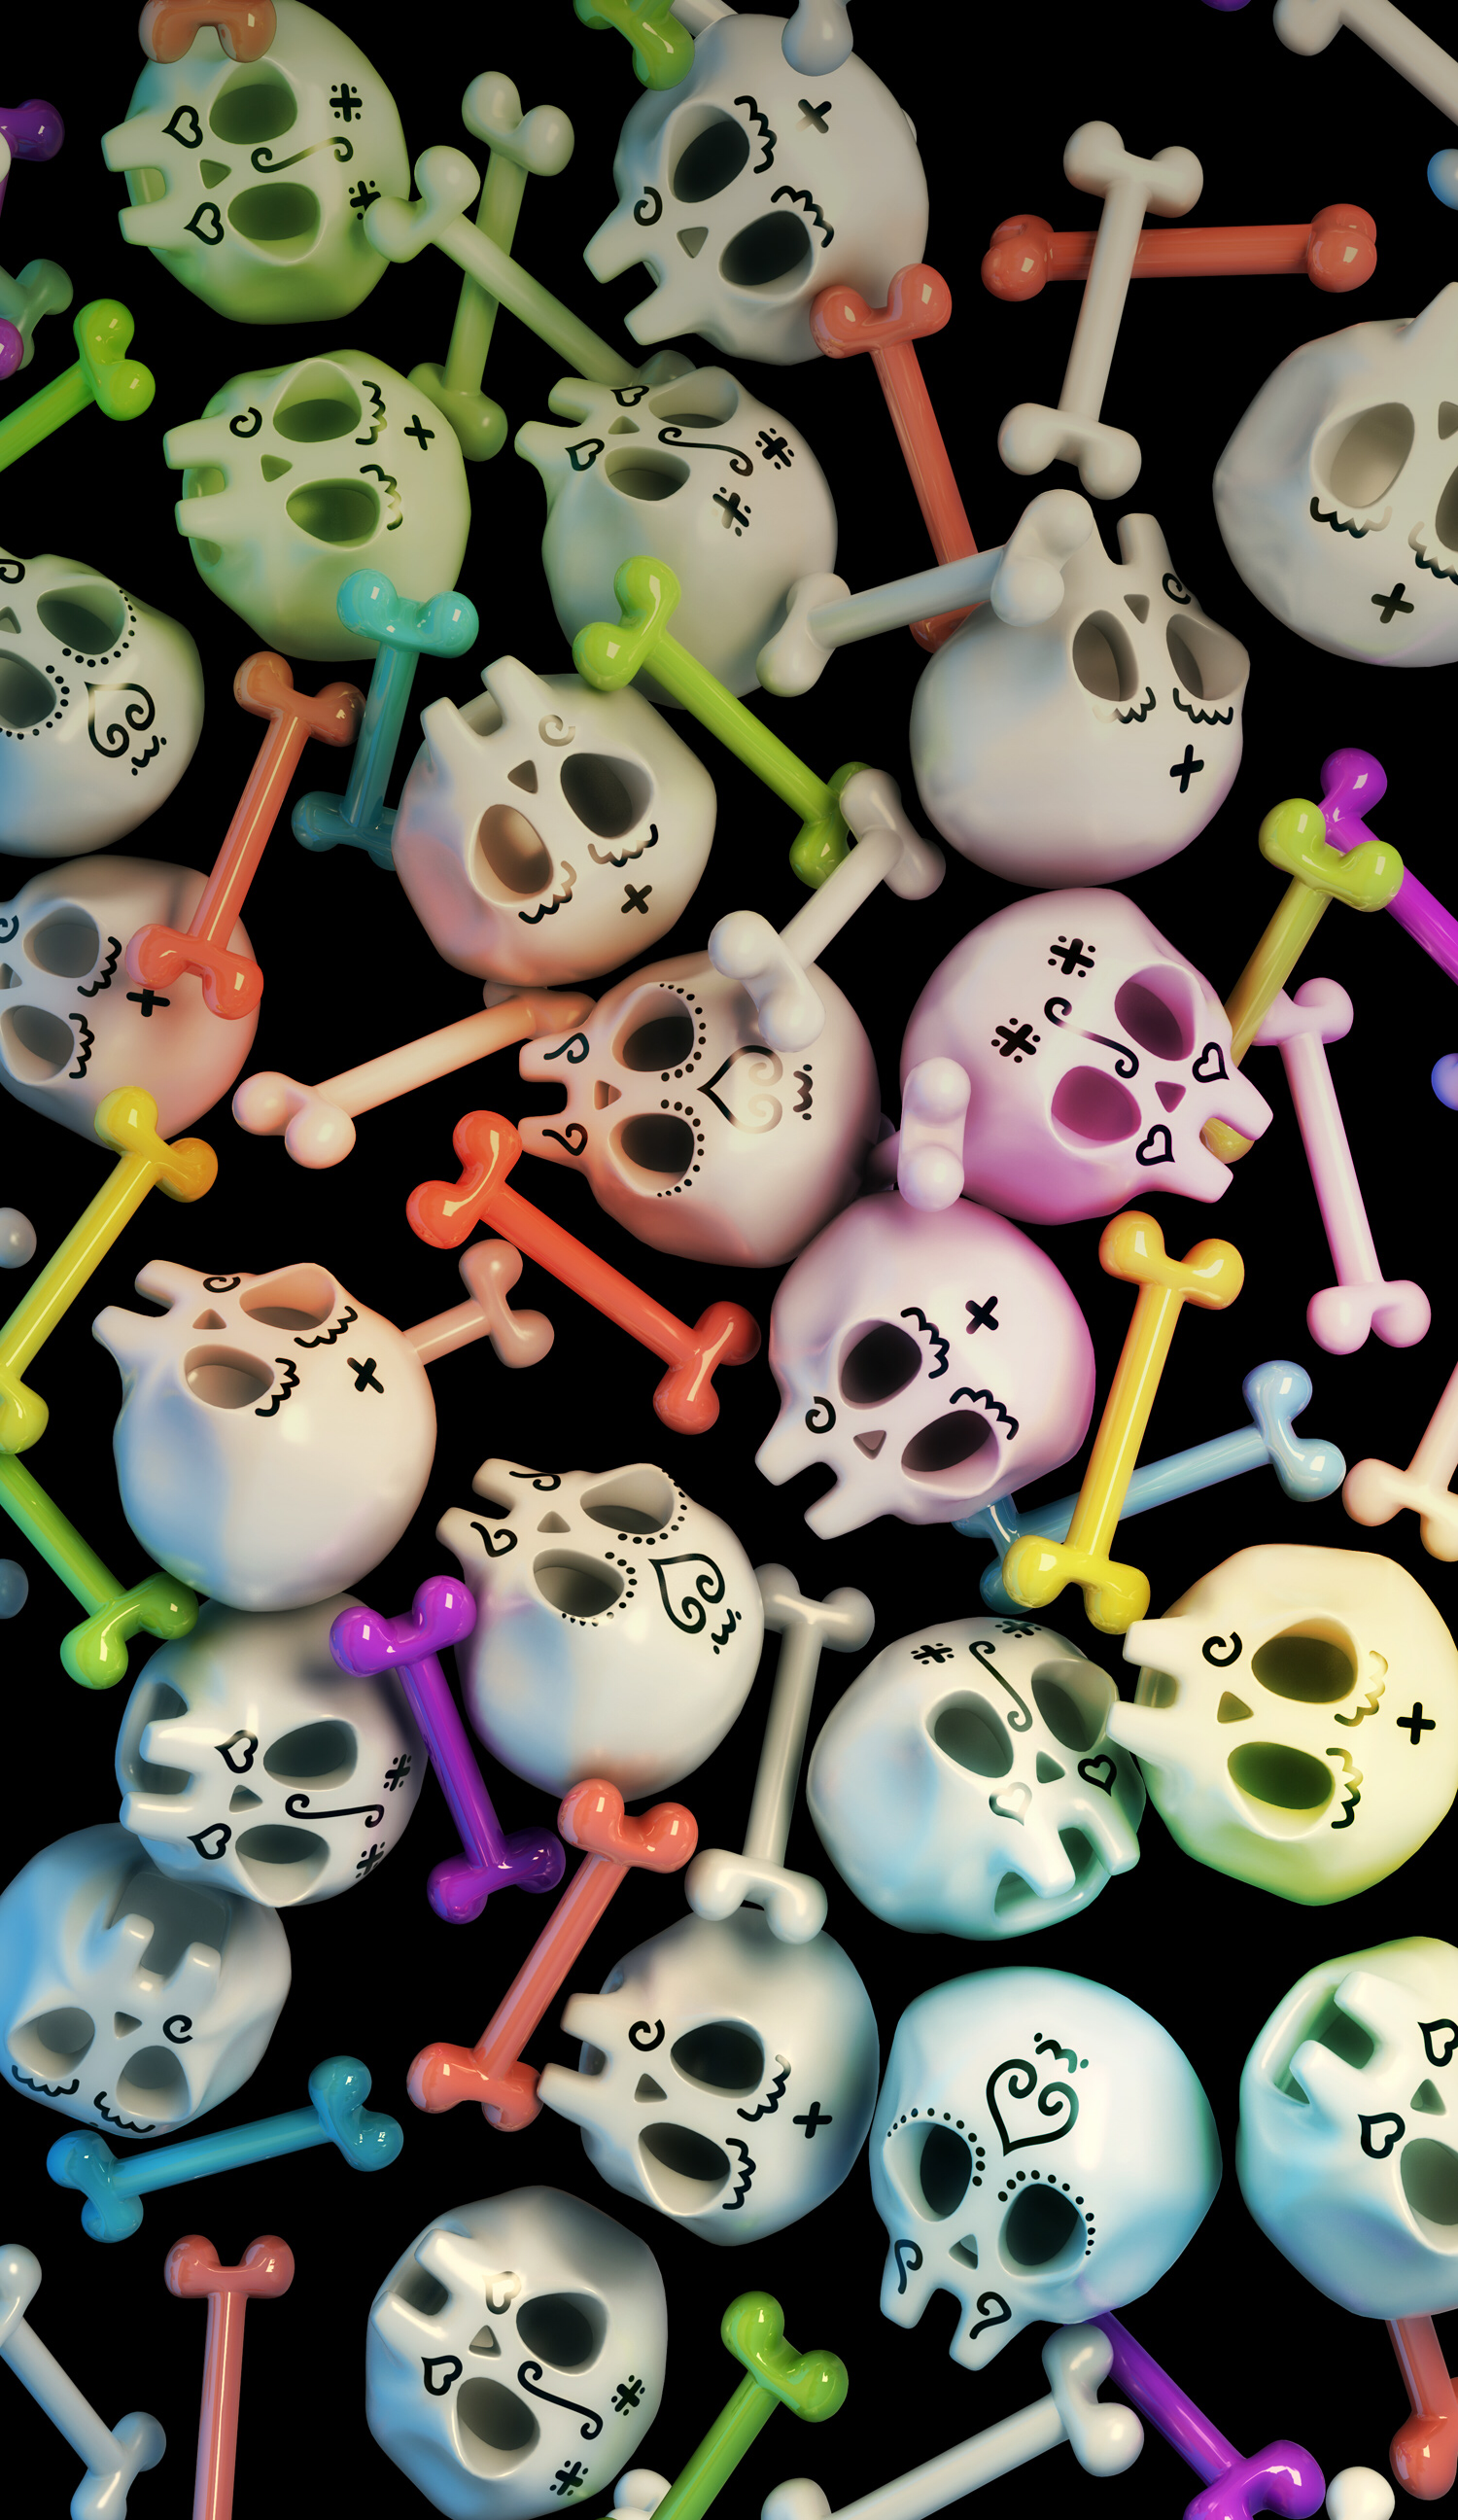 Pin by Amanda Lacy on Wallpapers Skull wallpaper iphone